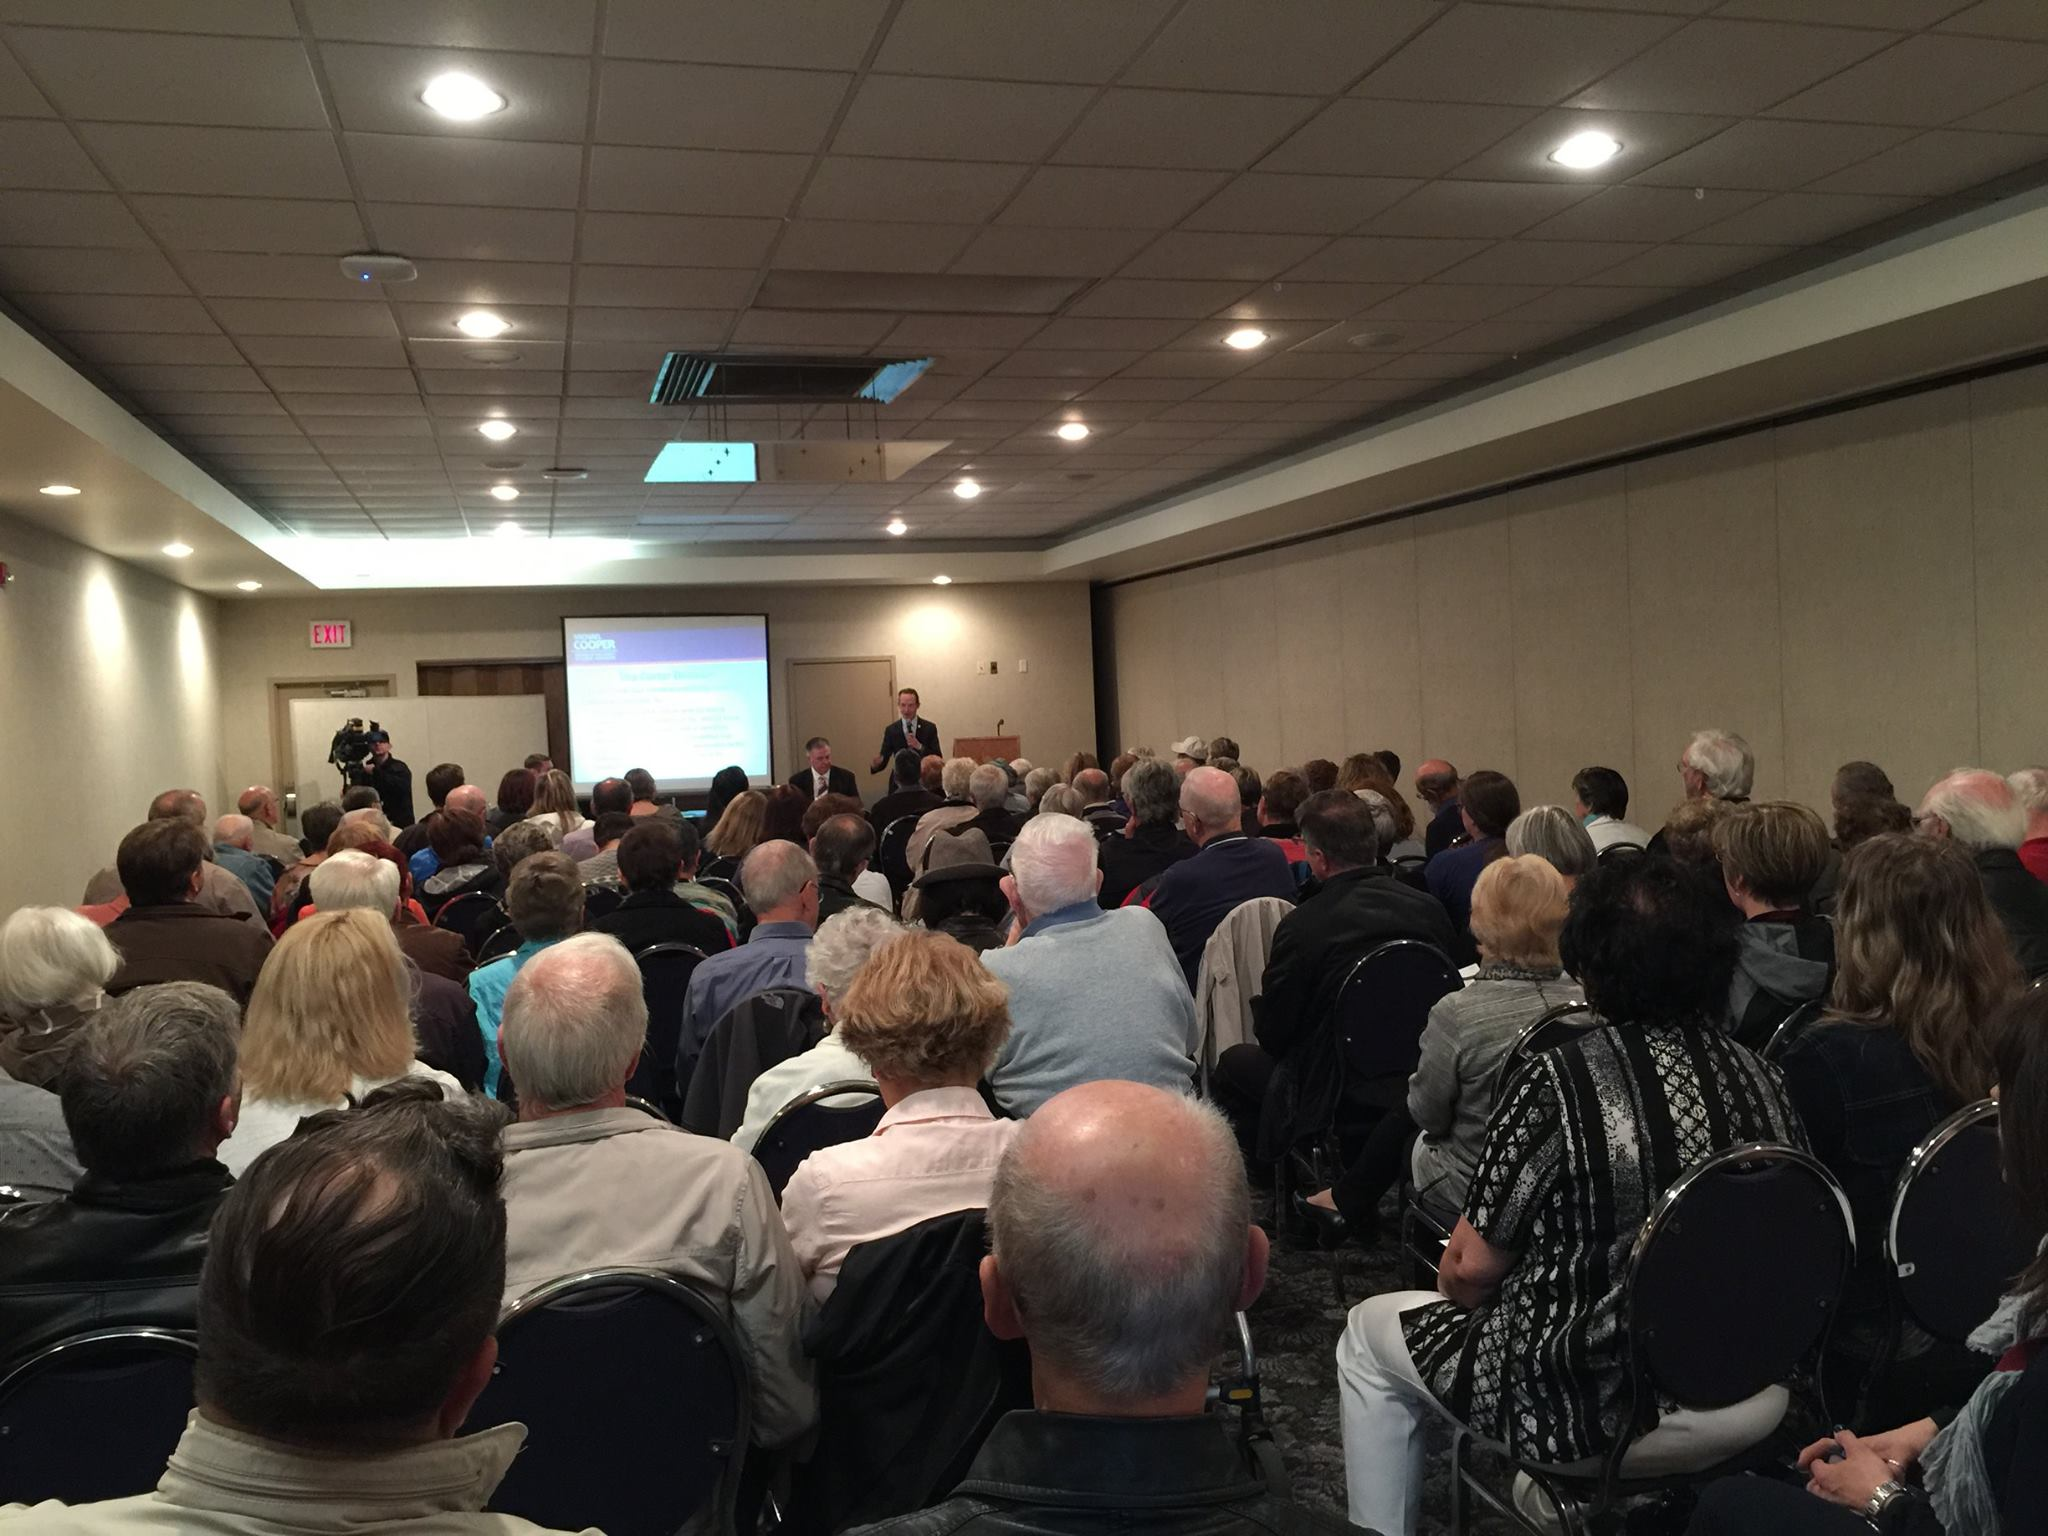 I was pleased to host a well-attended townhall on Physician-assisted-dying. A very respectful dialogue on a highly sensitive issue.